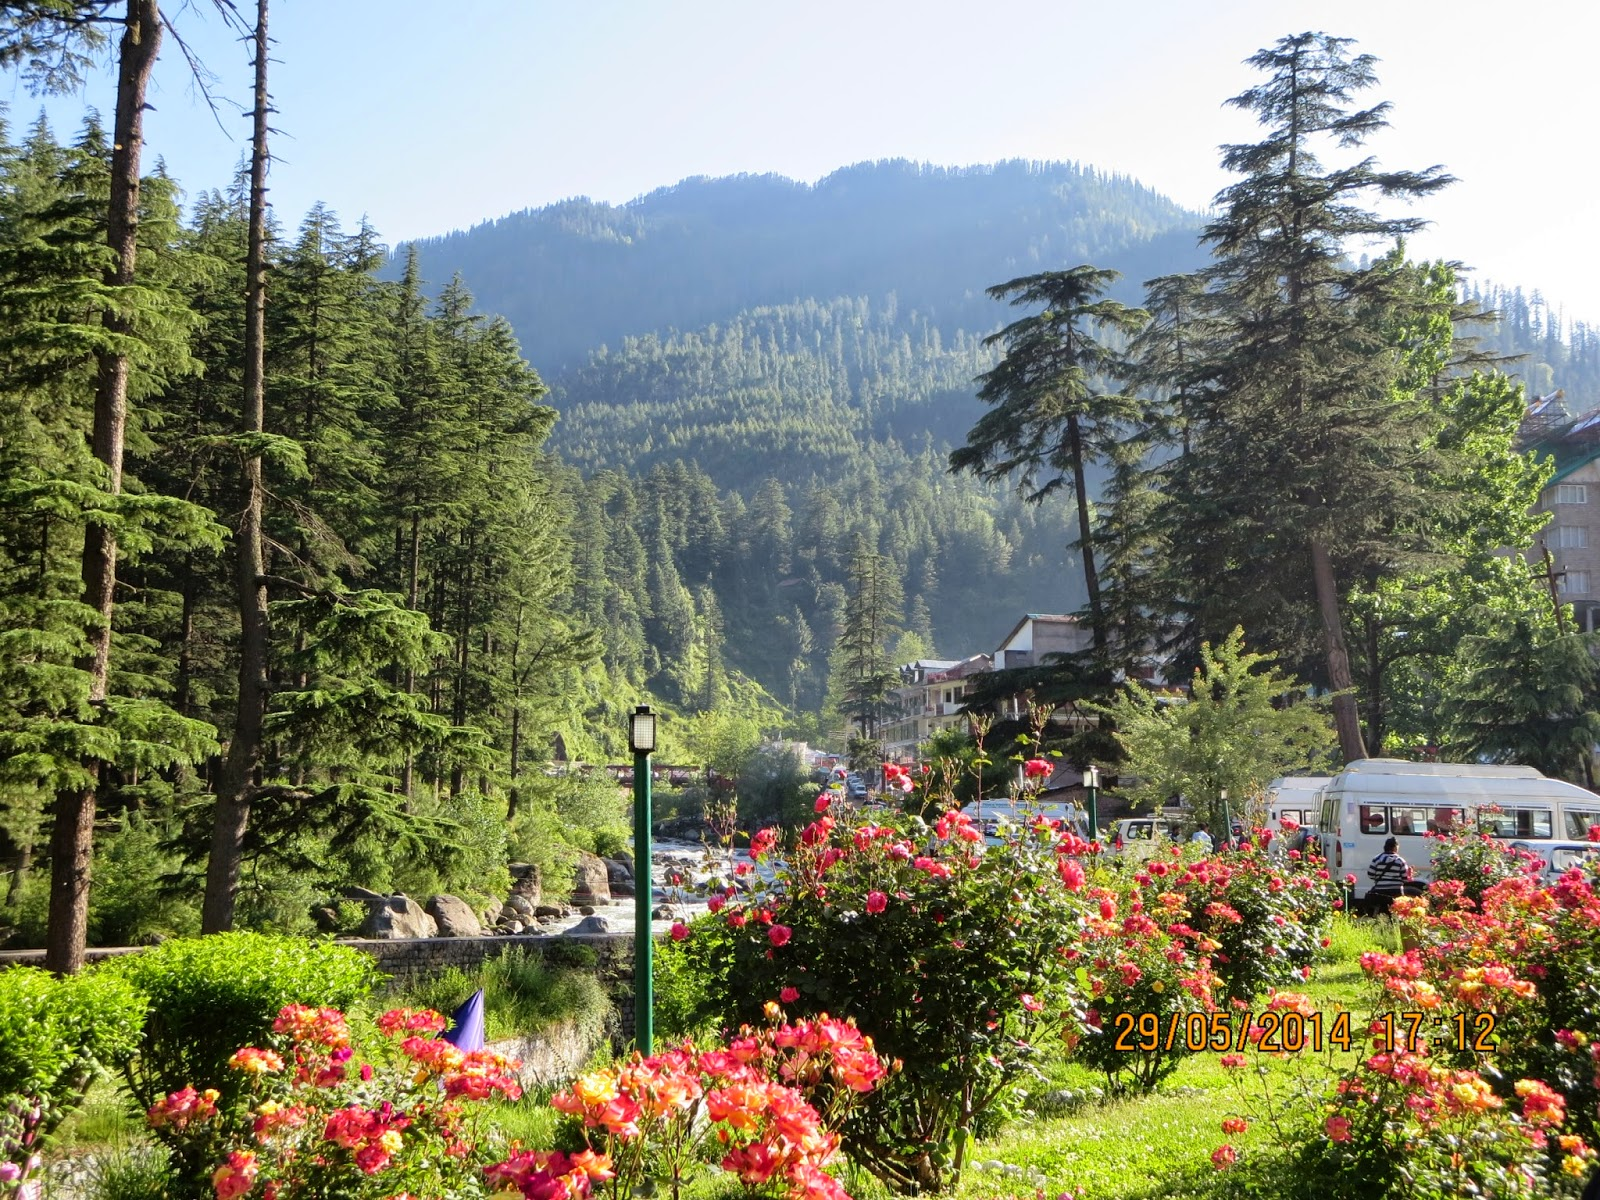 Manali - Picturesque view